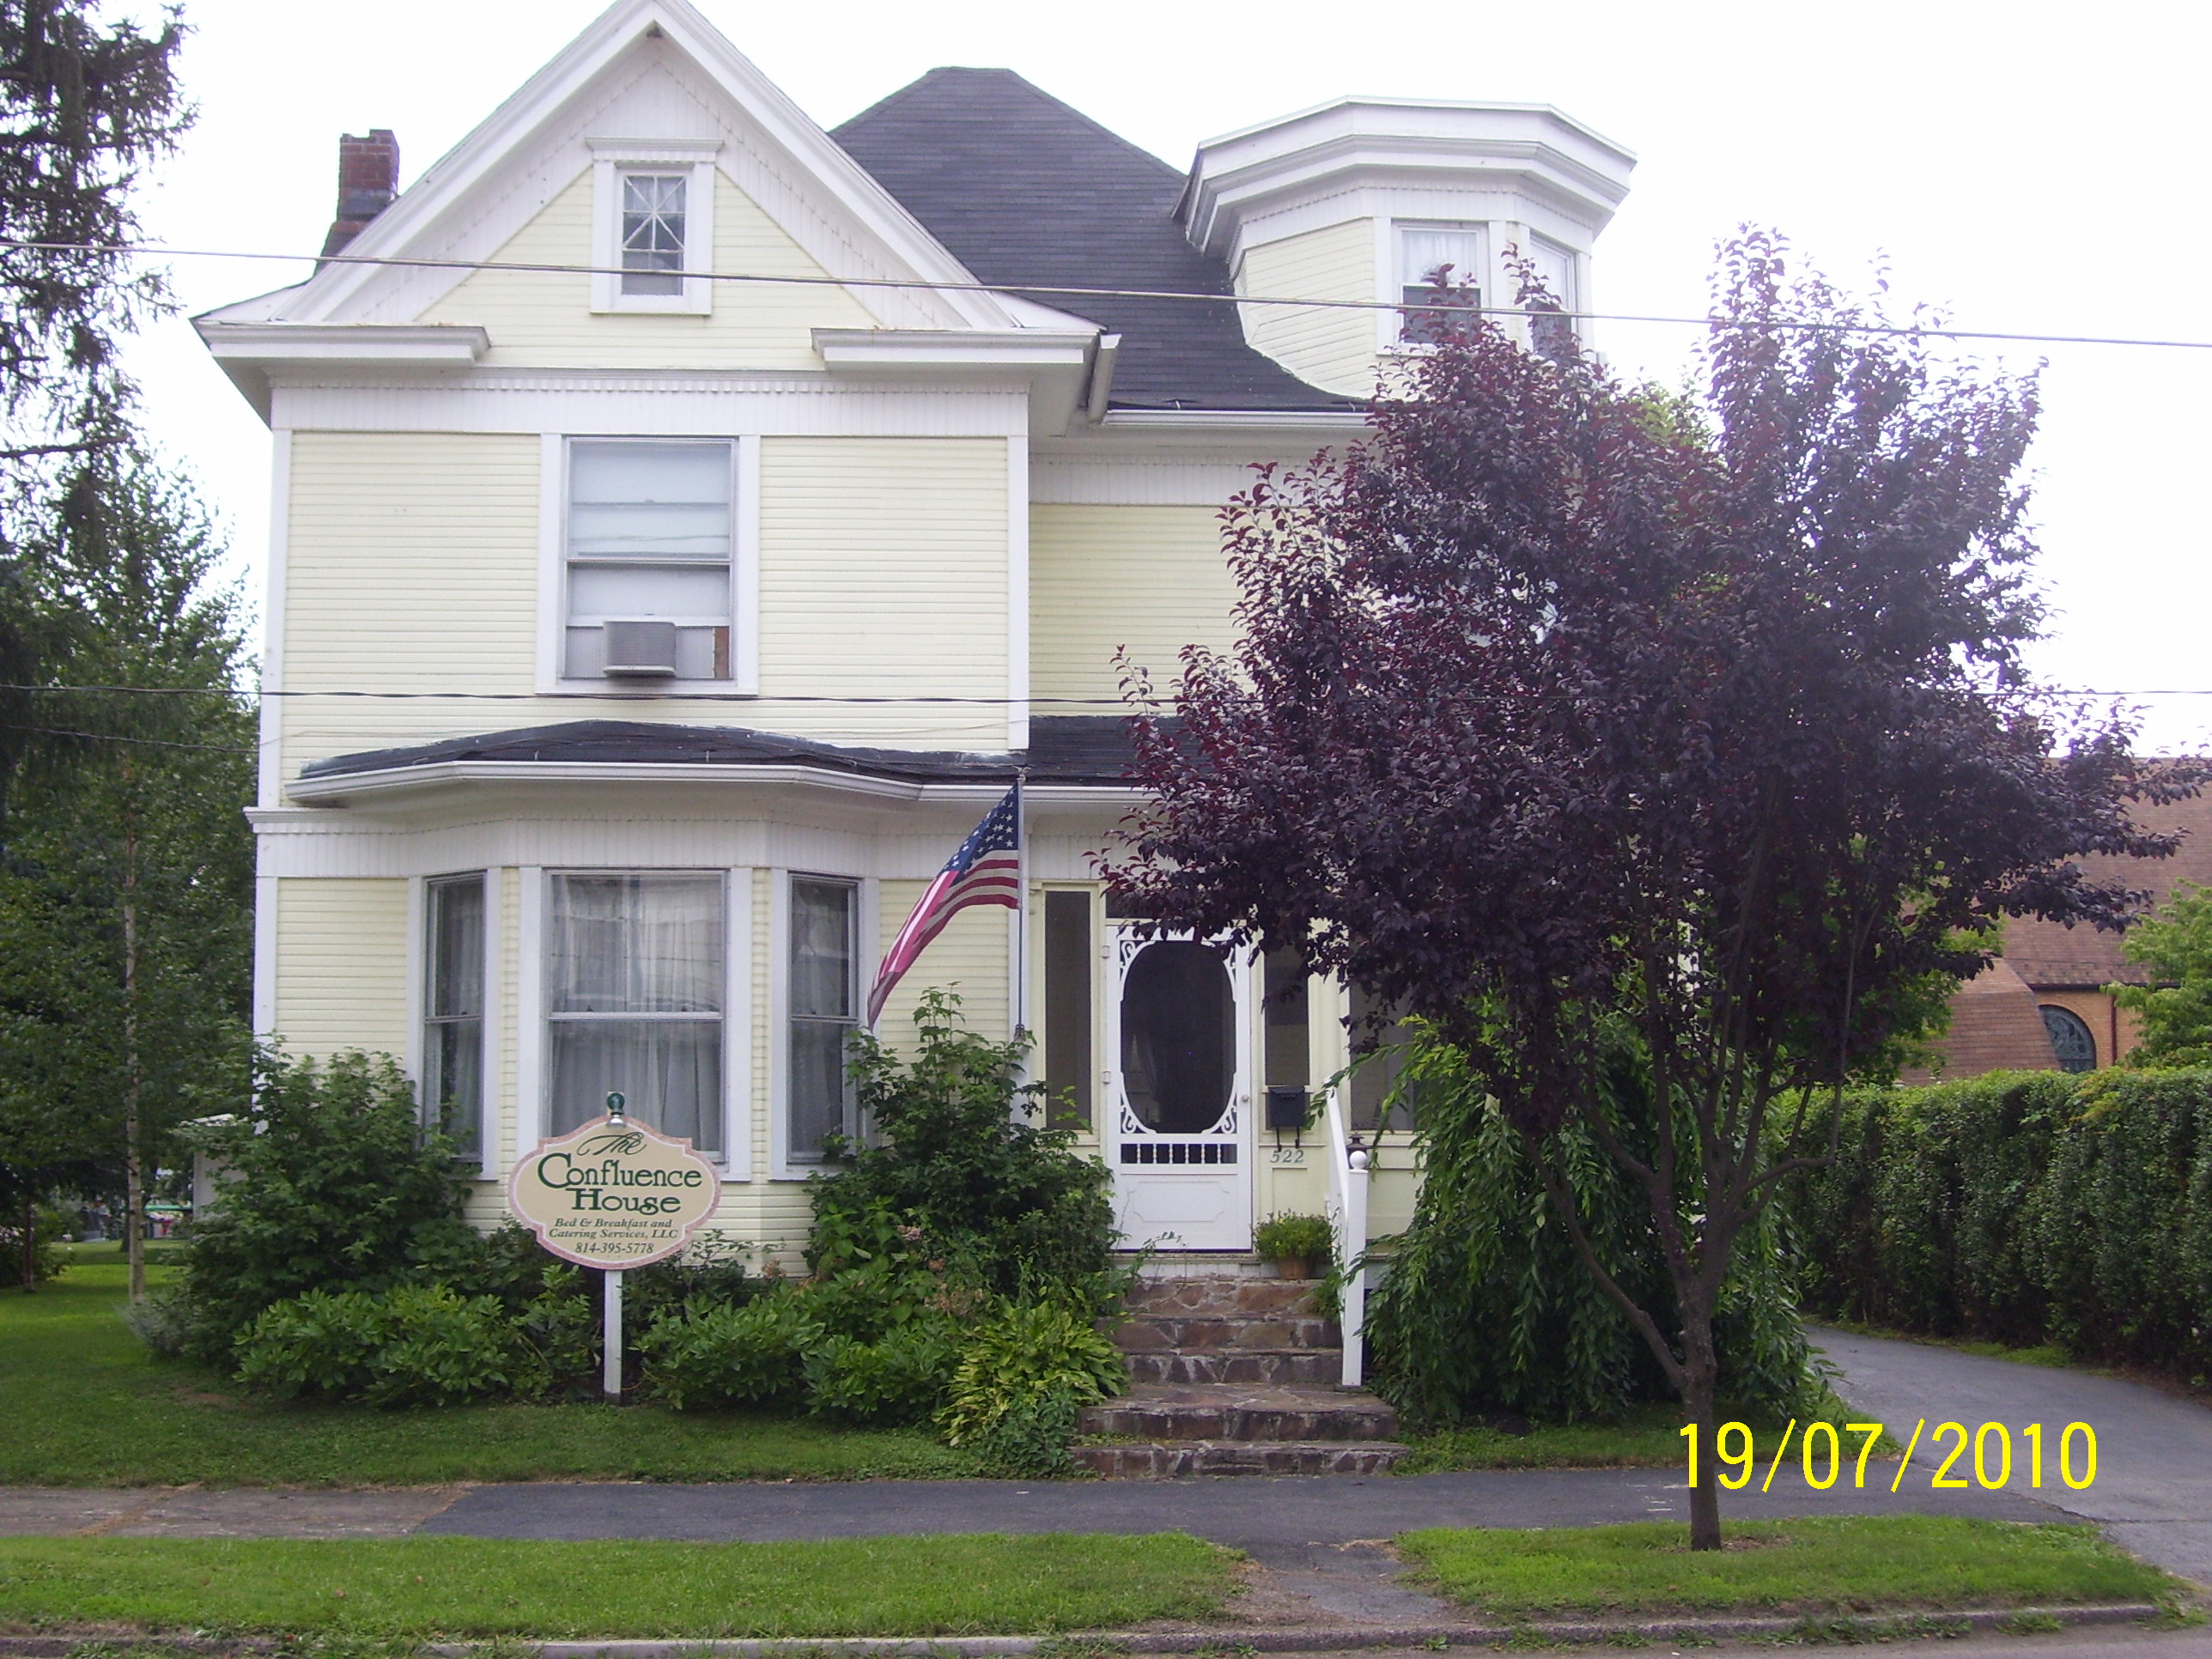 Confluence House Bed & Breakfast and Catering Se